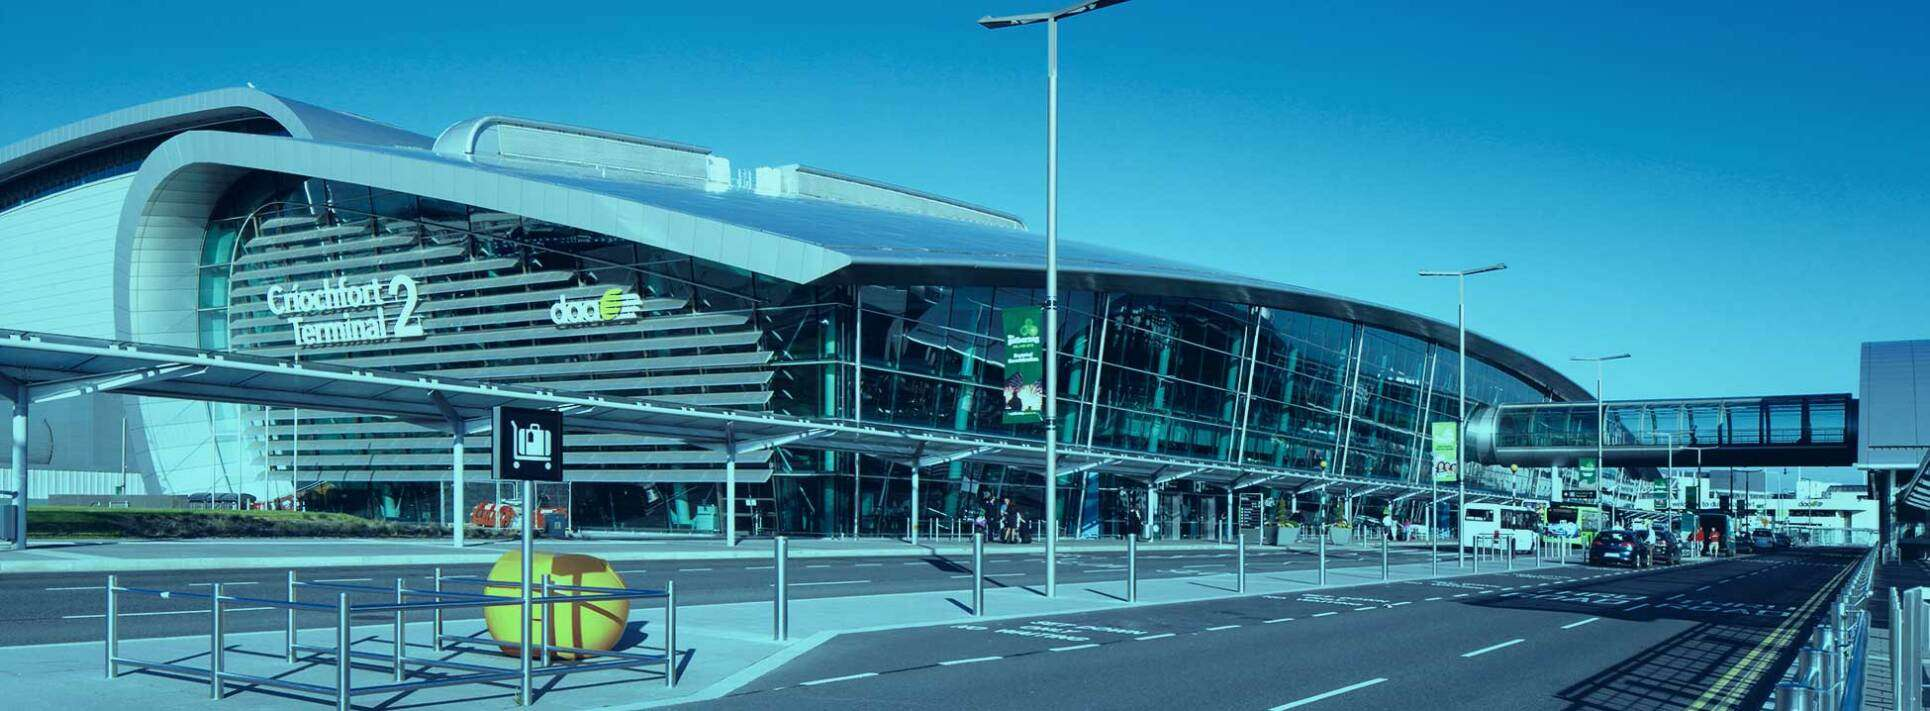 Dublin-Airport-Speed-up-Security-Lines-with-Veovo-Technology